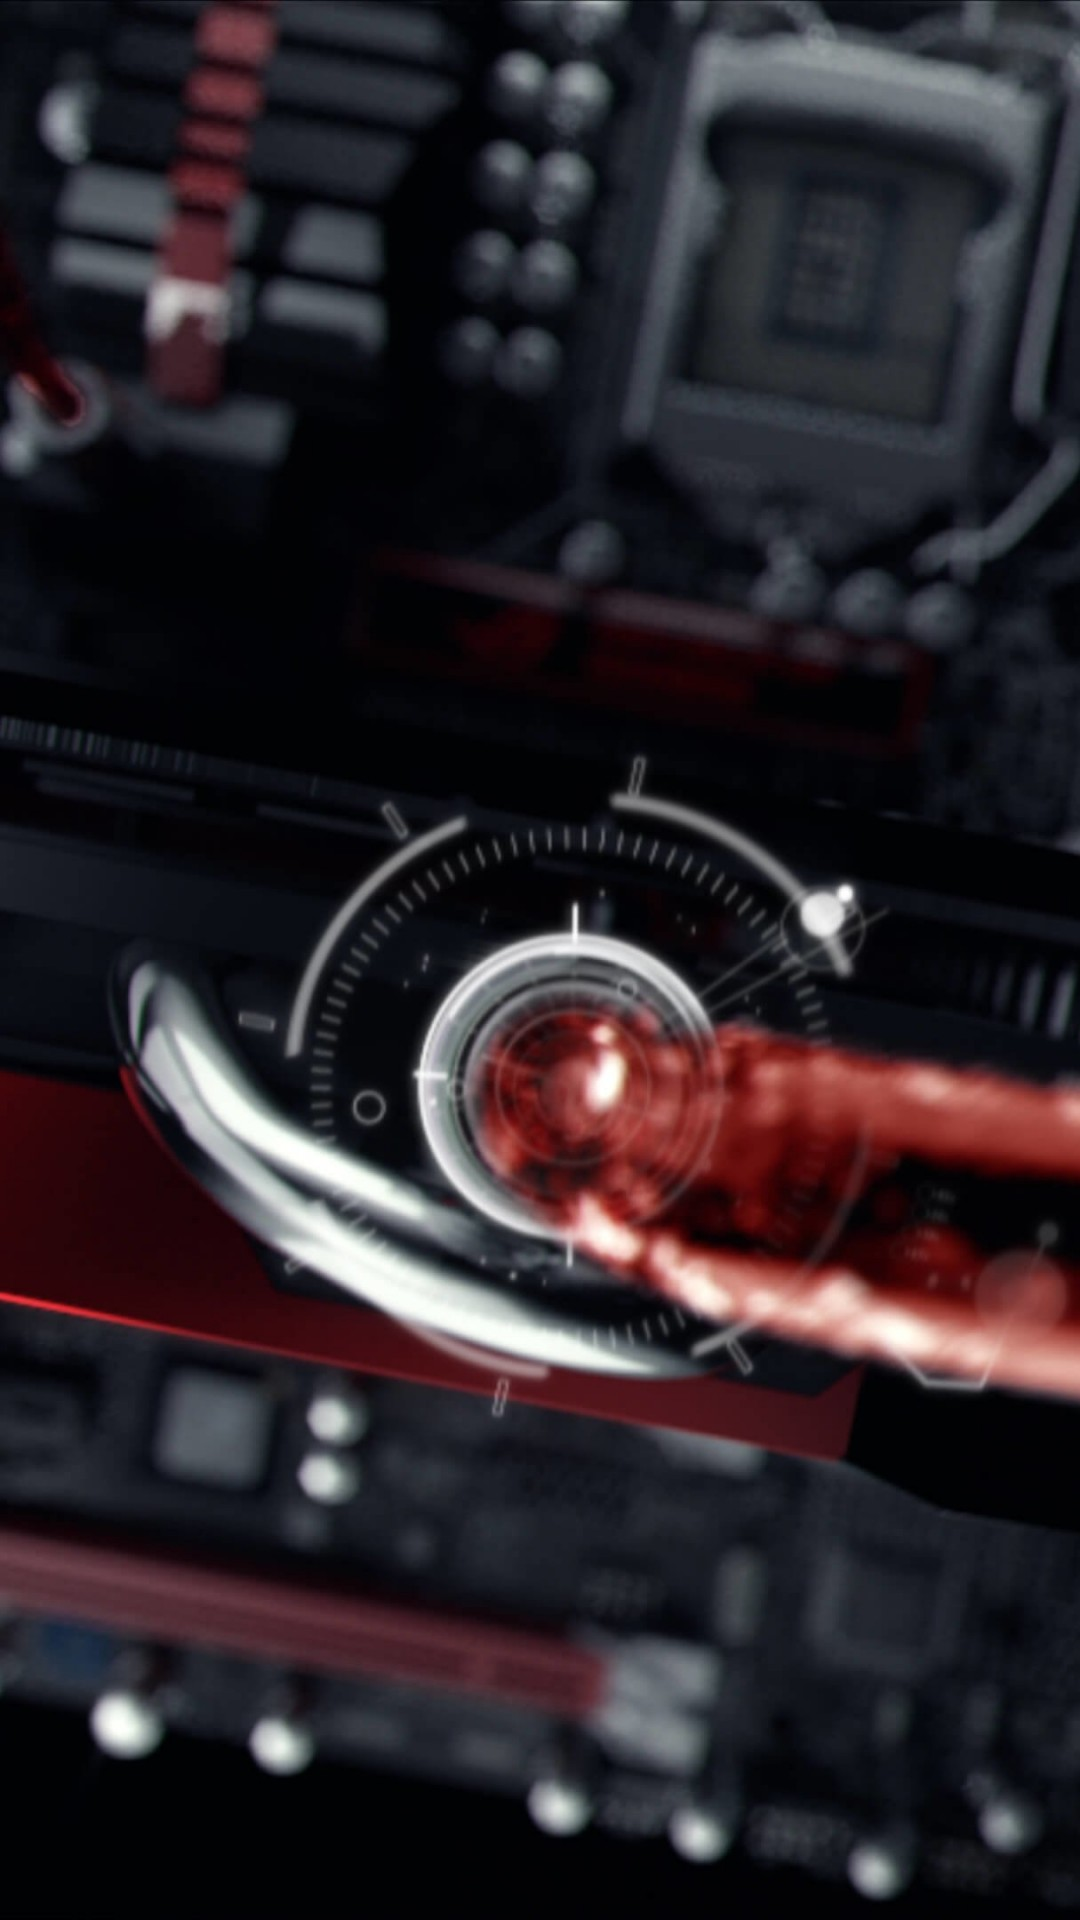 ASUS ROG Poseidon Liquid Cooling Wallpaper for SONY Xperia Z3